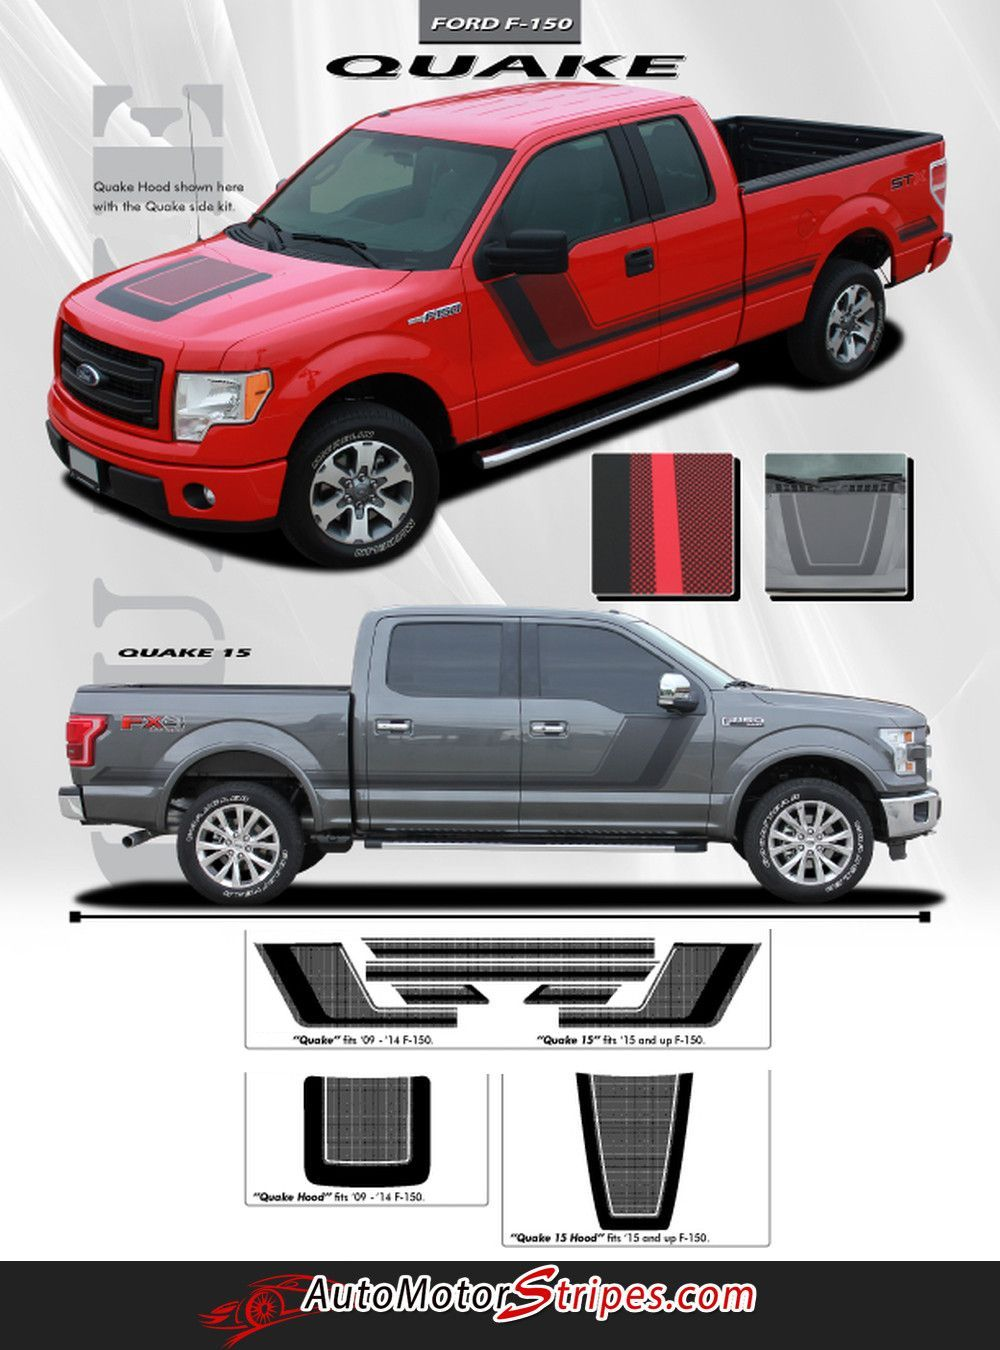 medium resolution of vehicle specific style ford f 150 series truck quake combo hood and sides tremor fx style vinyl graphic stripe decals year fitment 2009 2010 2011 2012 2013